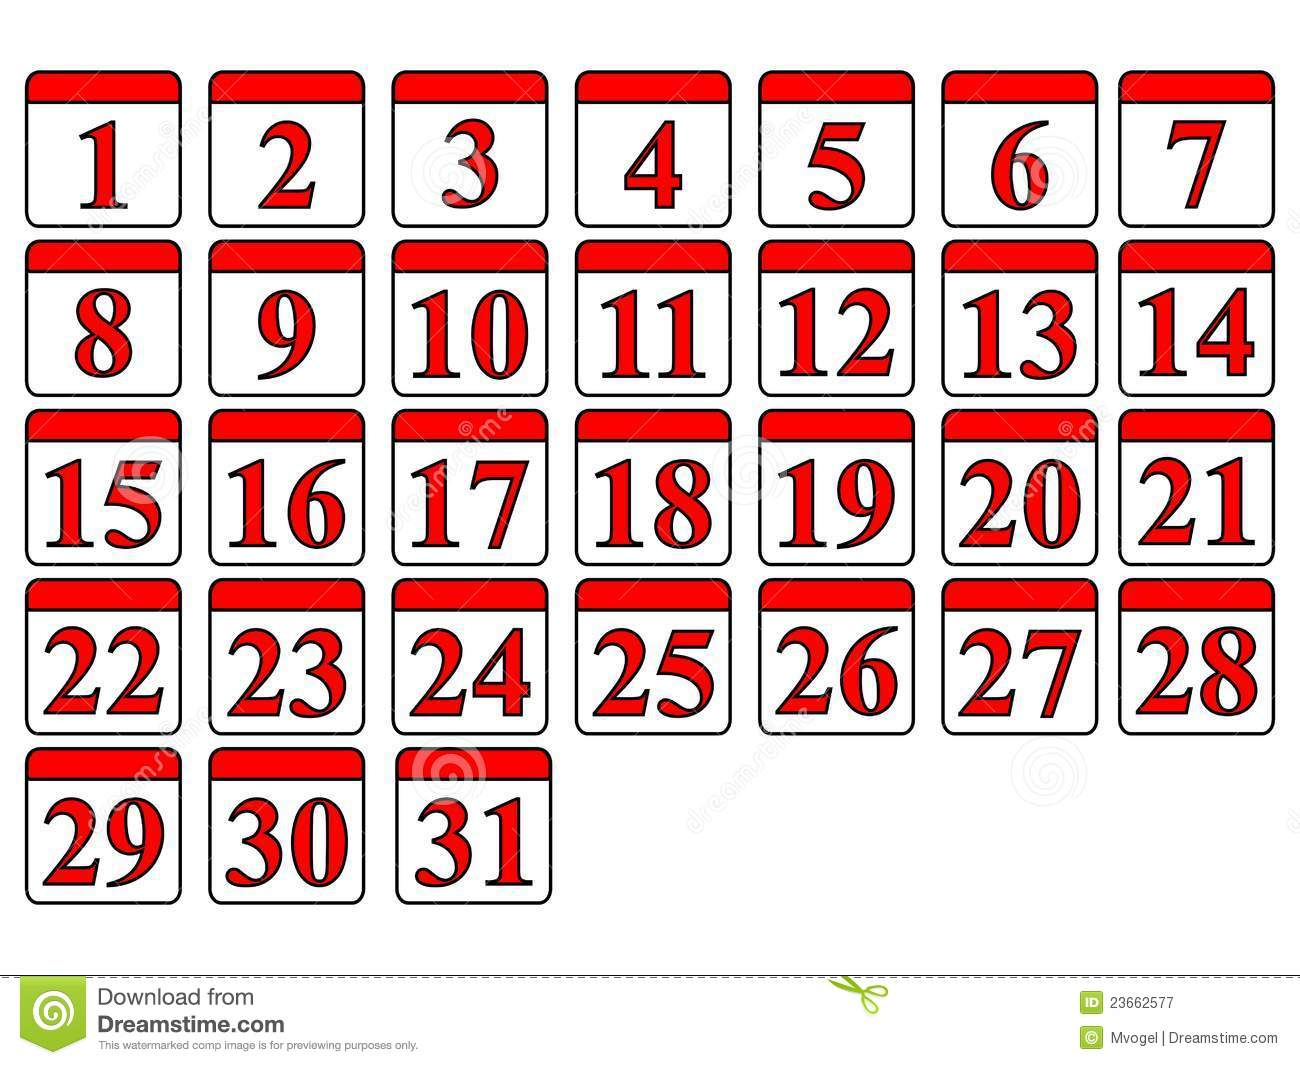 Generic Calendar Royalty Free Stock Photography - Image: 23662577